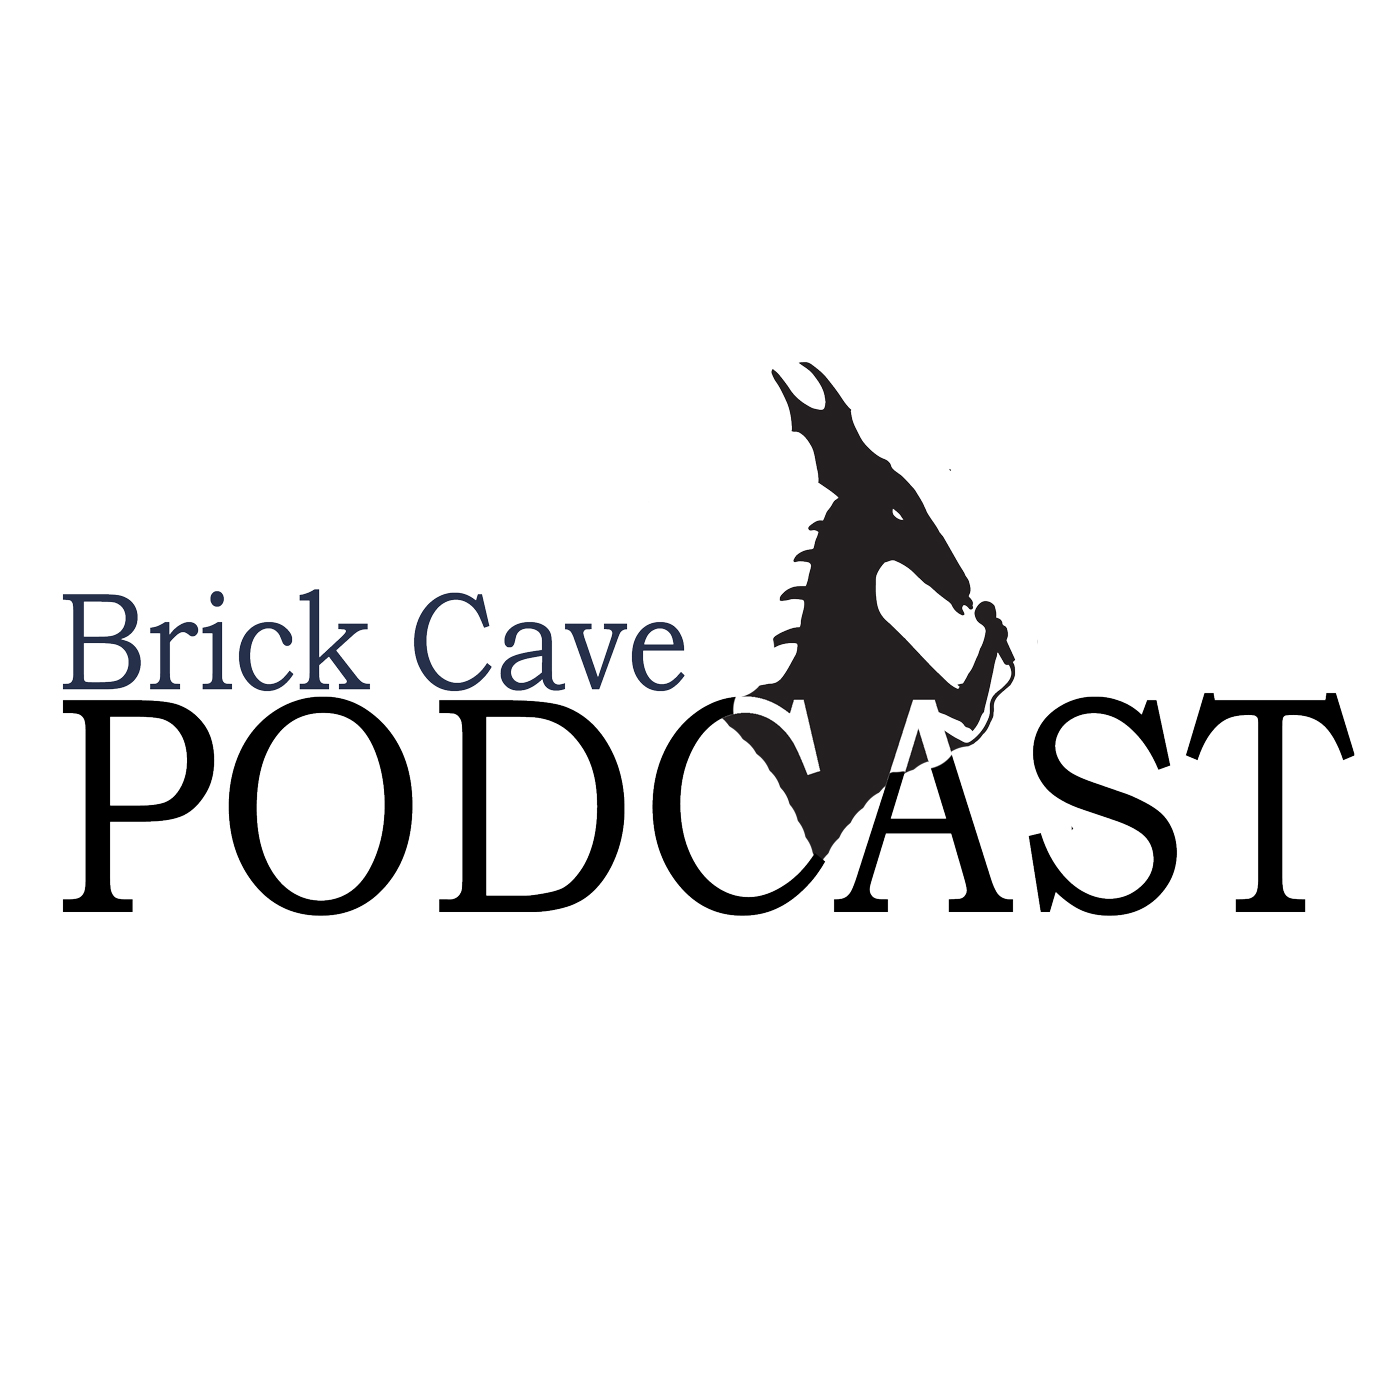 The Brick Cave Podcast